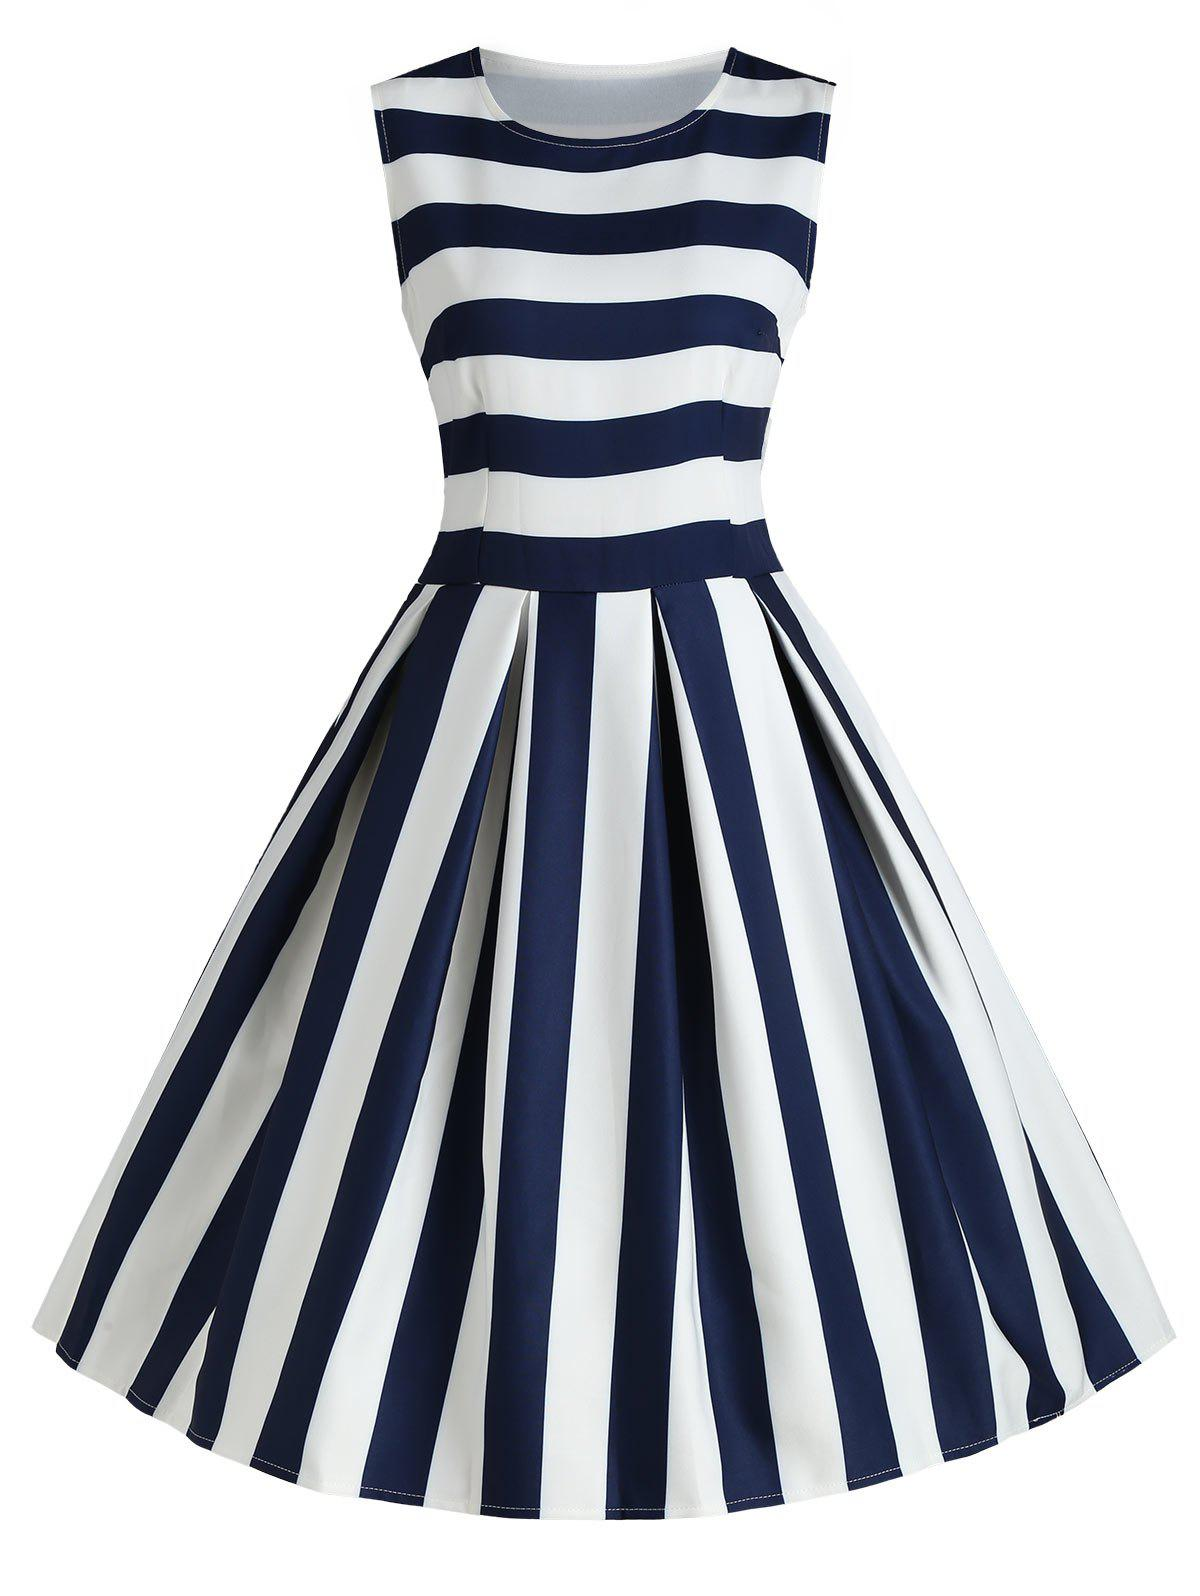 Striped Sleeveless Fit and Flare Midi Dress floral print sleeveless fit and flare midi dress